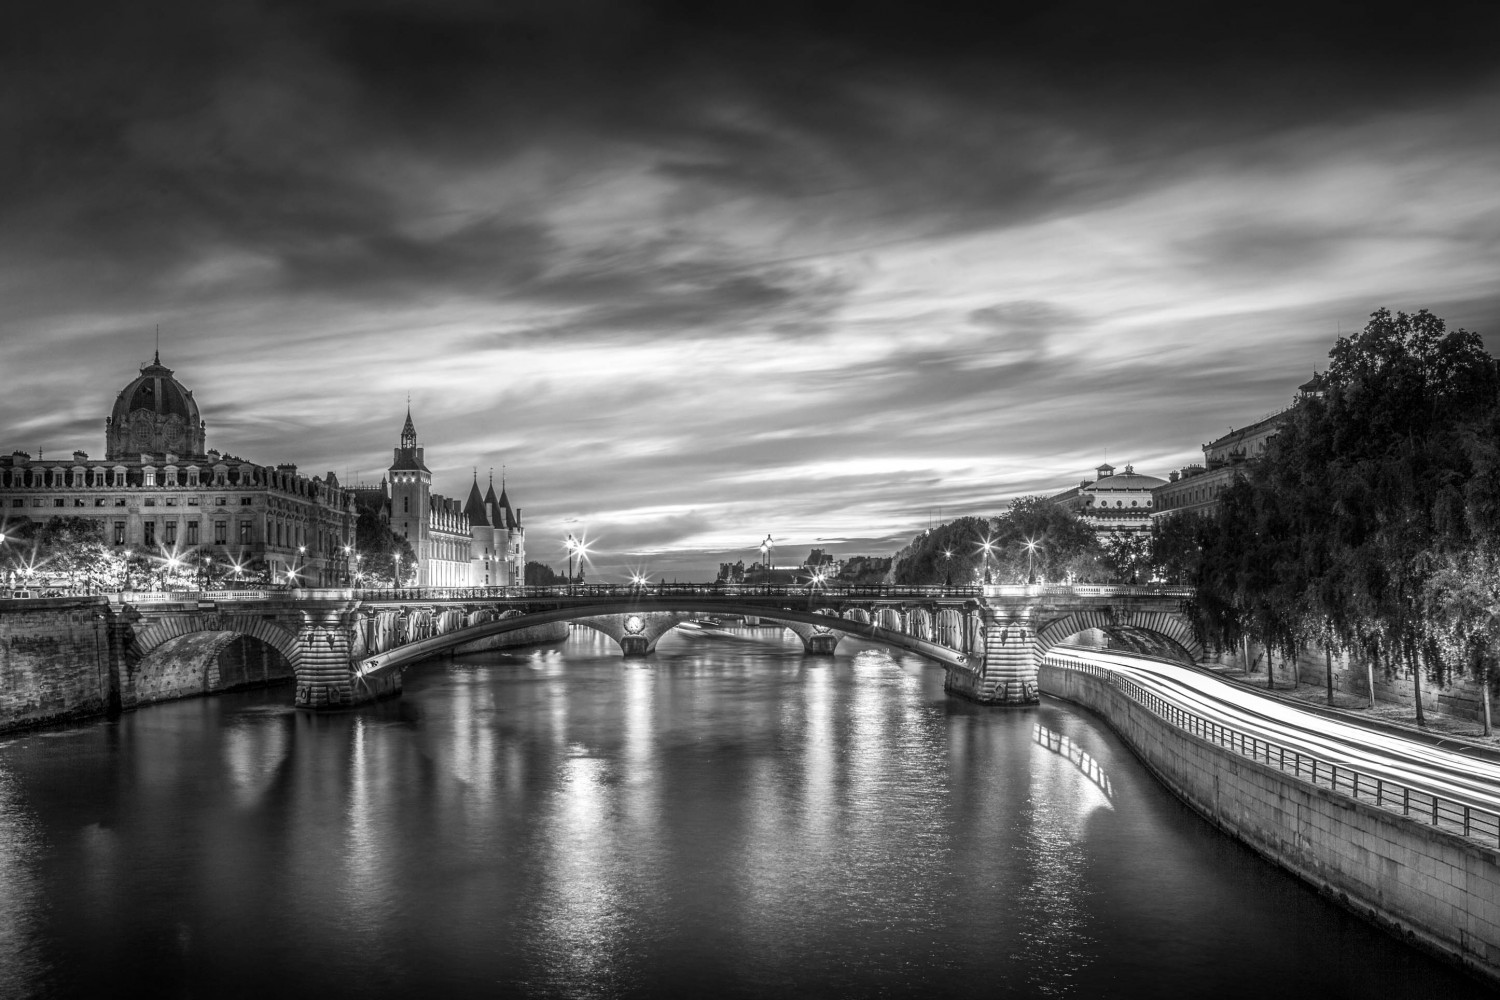 Learn to Shoot and Edit Intense Black & White Cityscapes Like Serge Ramelli